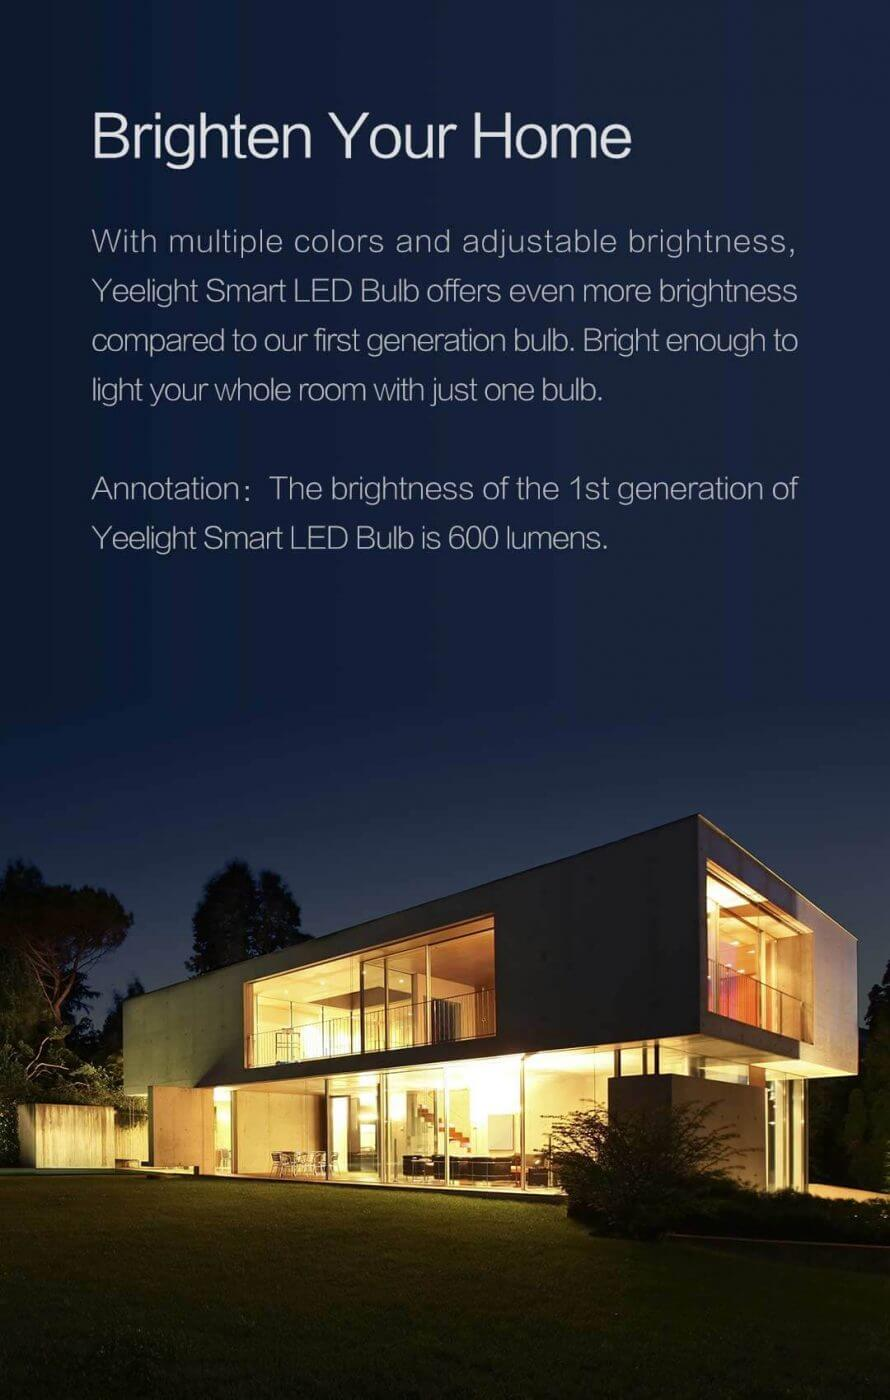 Yeelight Smart LED Bulb (Colour) Ver 2 – 2018 Edition - Mobile 2